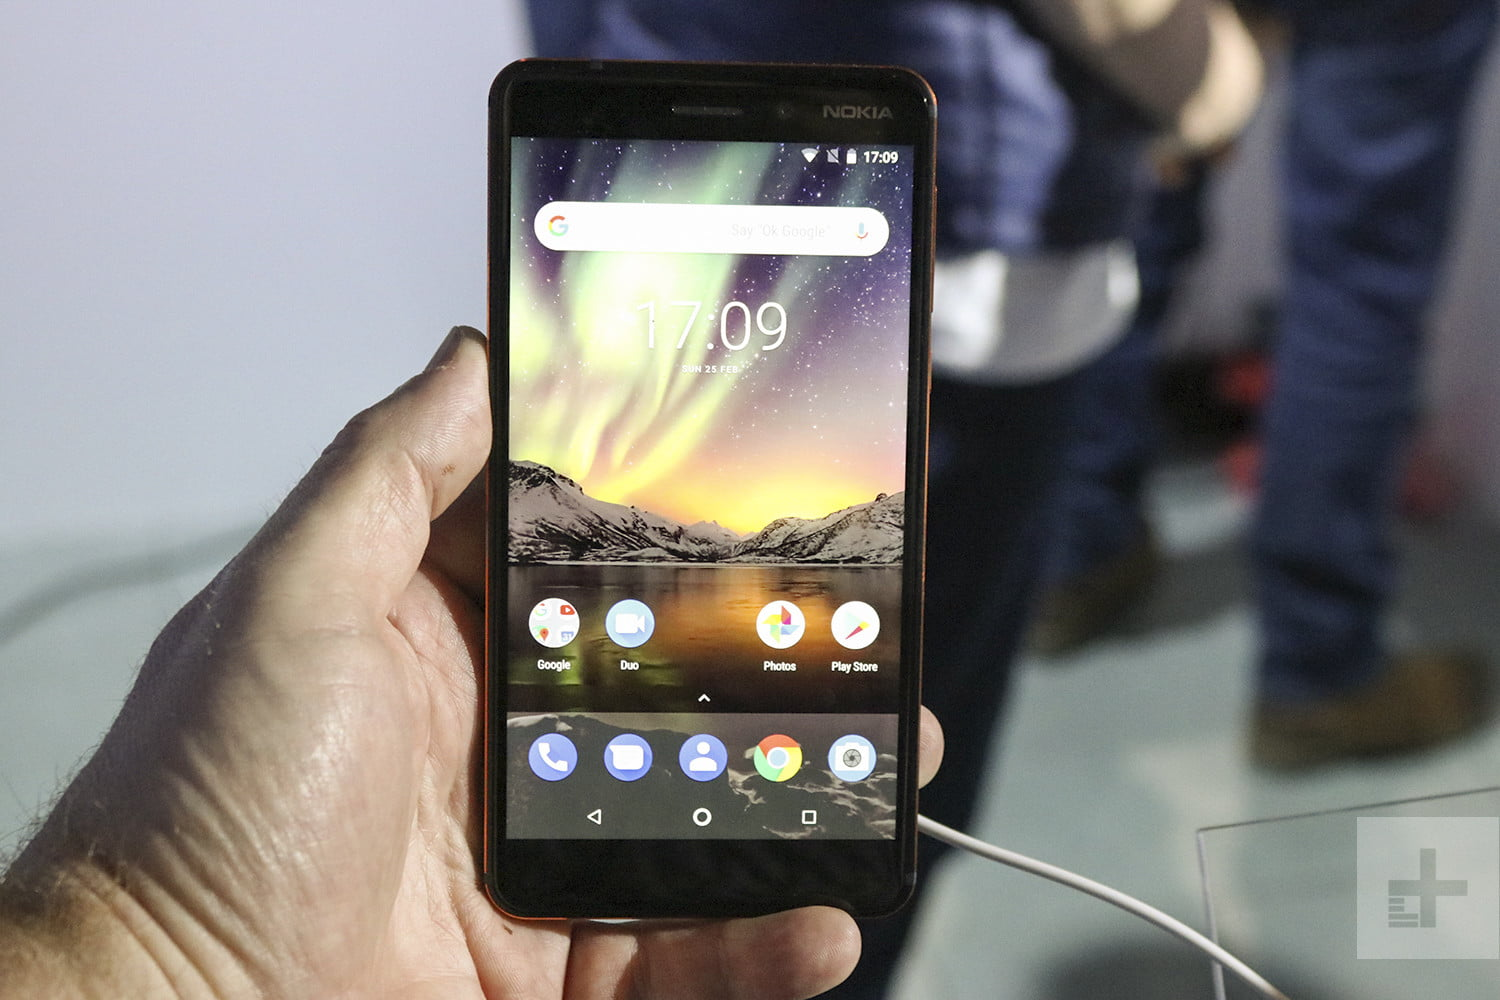 HMD Just Announced 5 New Nokia Phones at Mobile World